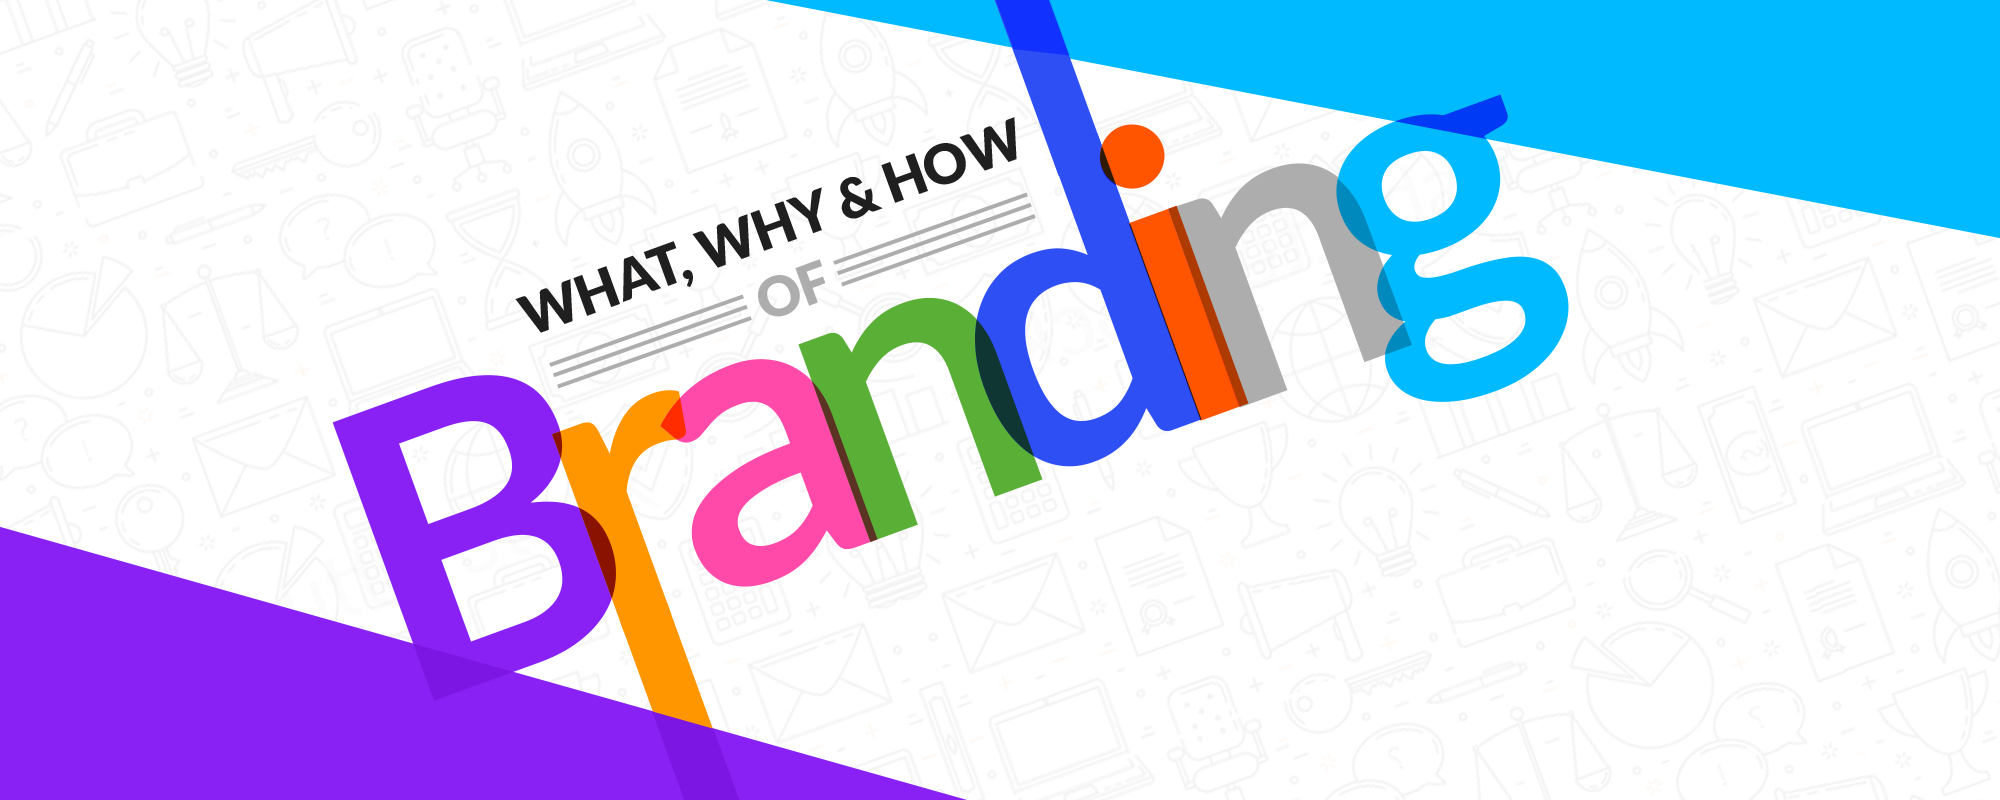 Beginners Guide on Branding That Even Experts Will Find Useful